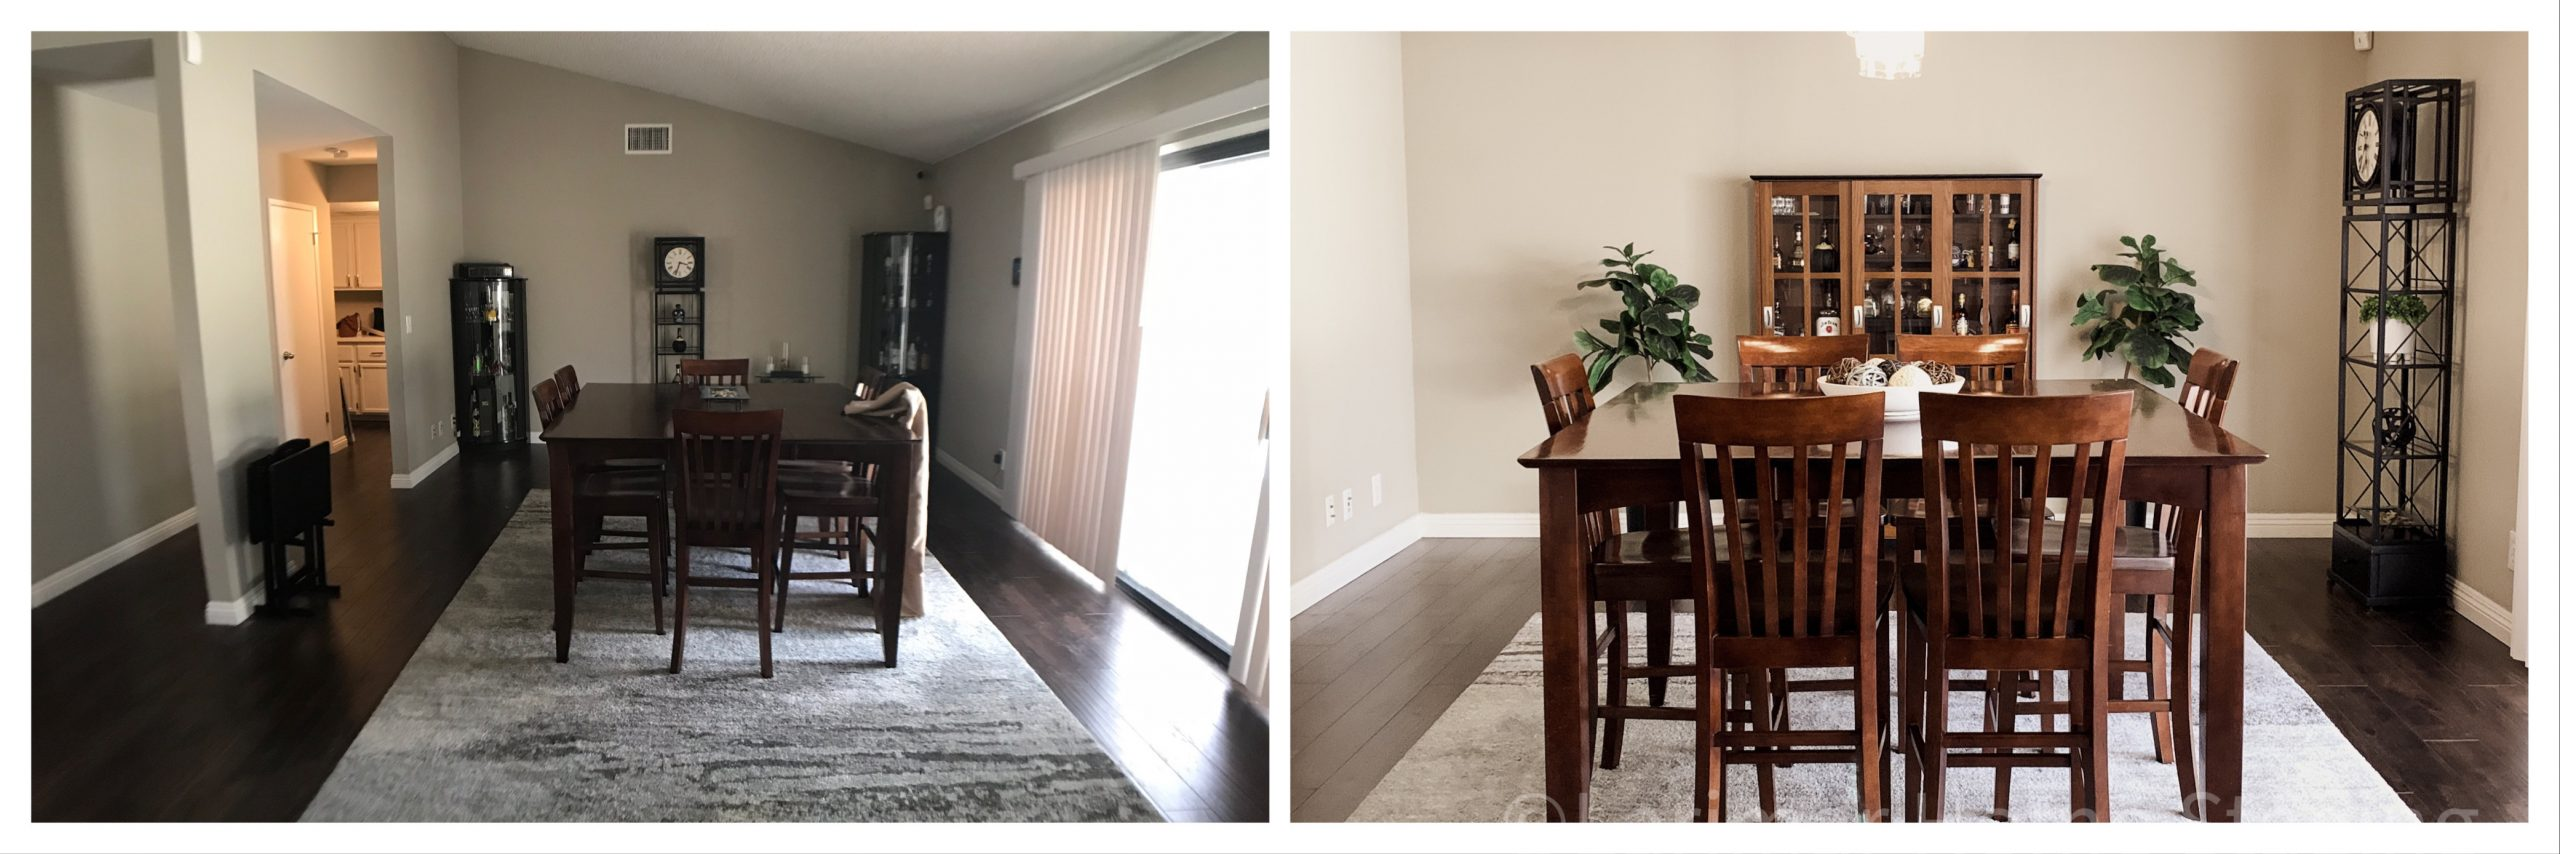 Occupied Home Staging Before and After